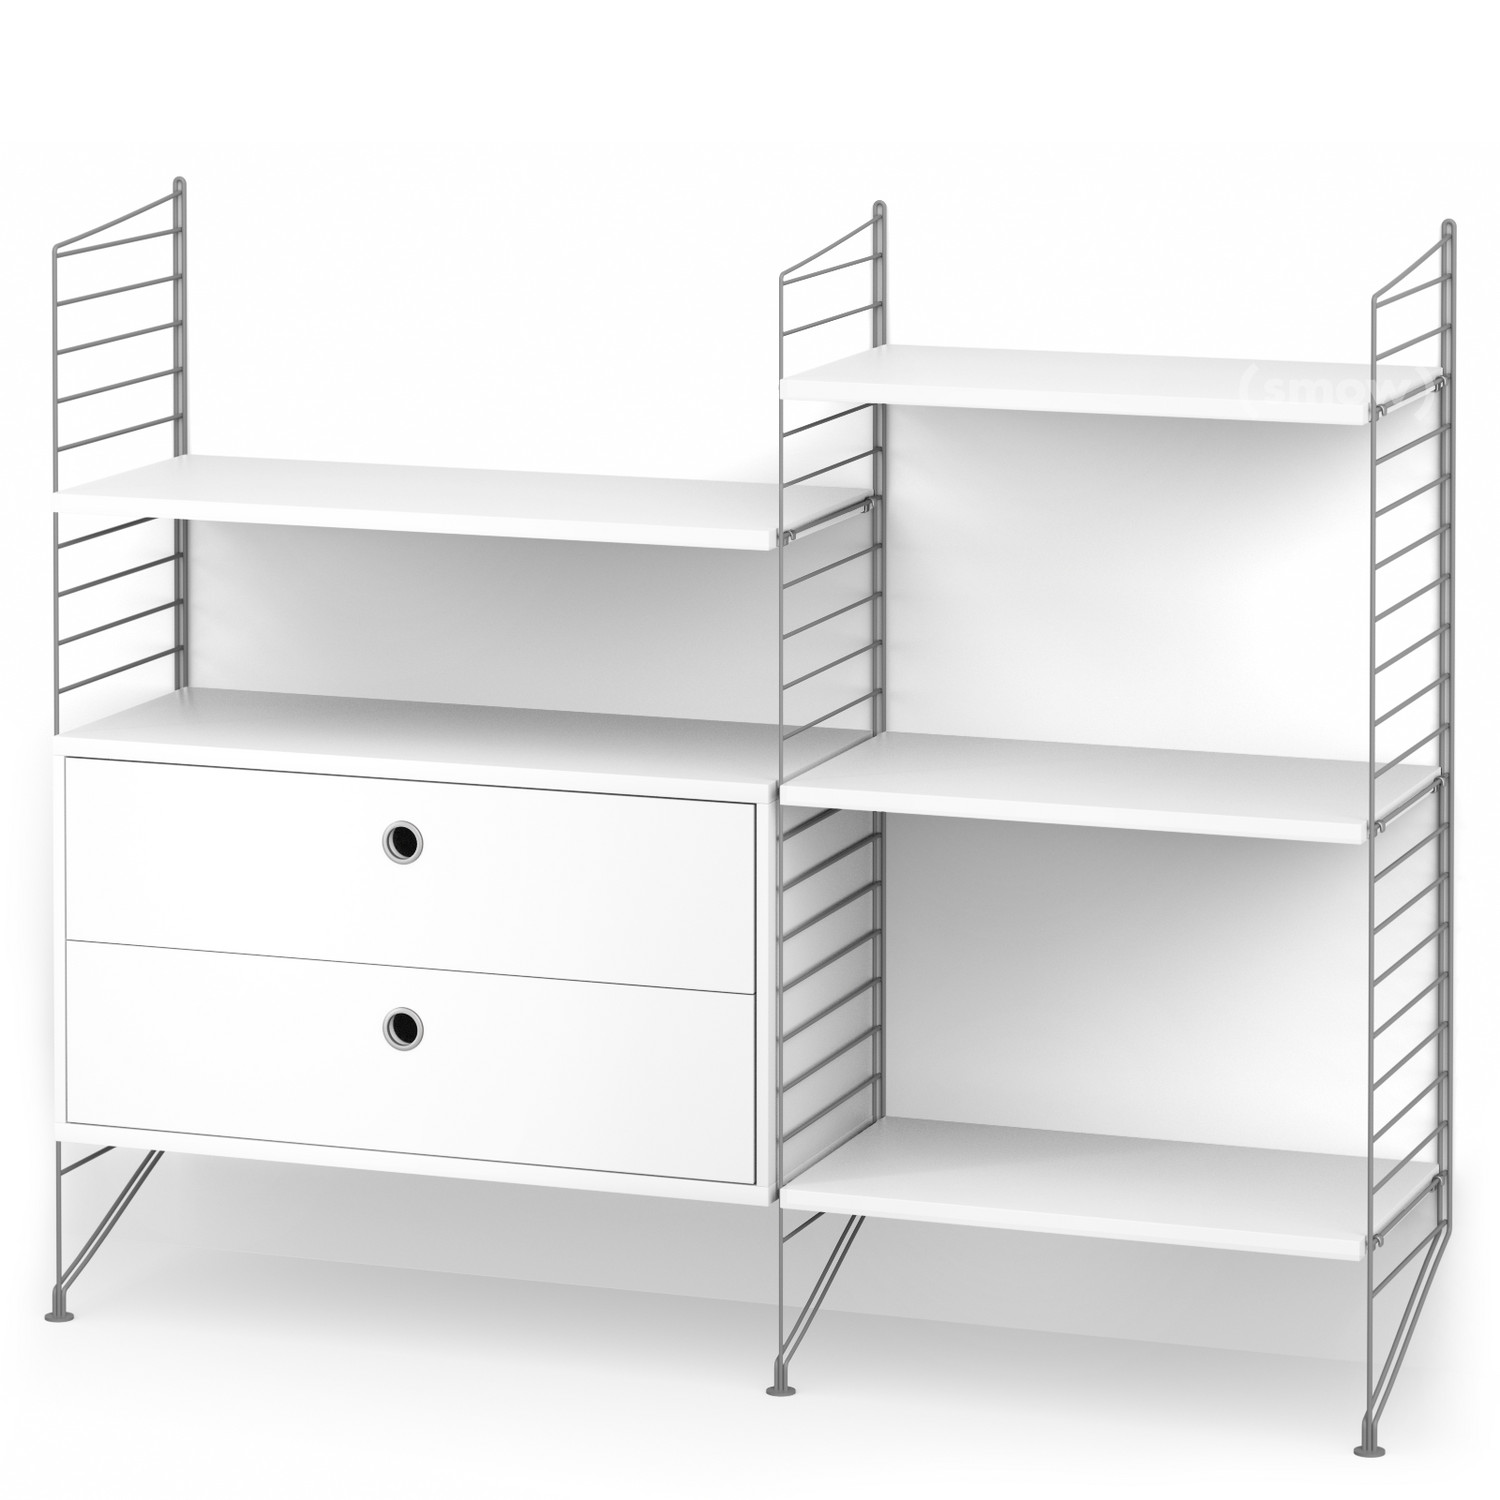 String System Floor Shelf With Drawers Grey|White Lacquered